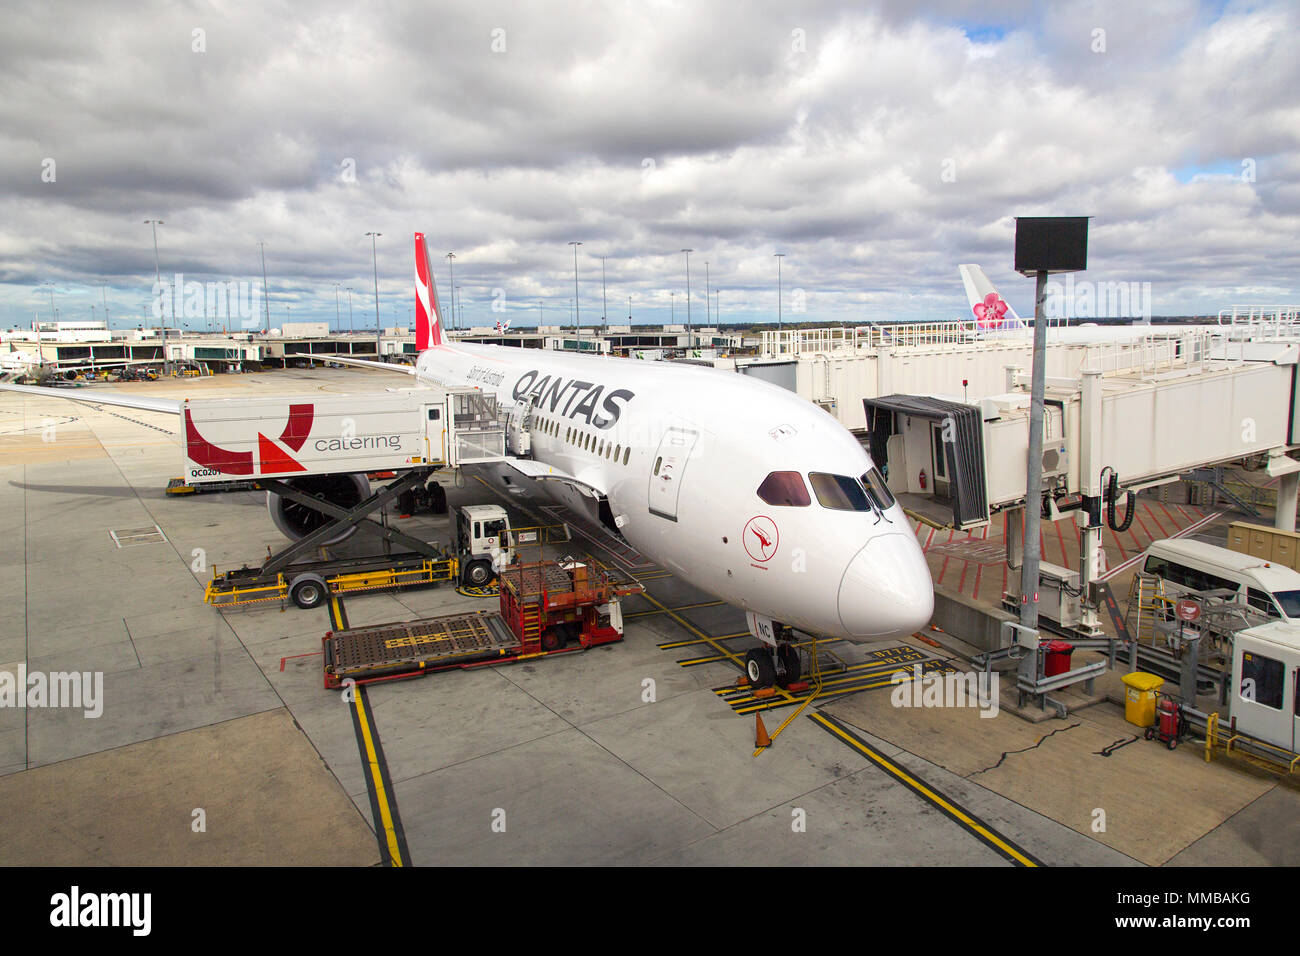 Melbourne, Australia: April 16, 2018: Qantas airplane at Tullamarine Airport being refuelled and restocked for the next flight. Qantas Airways is the - Stock Image